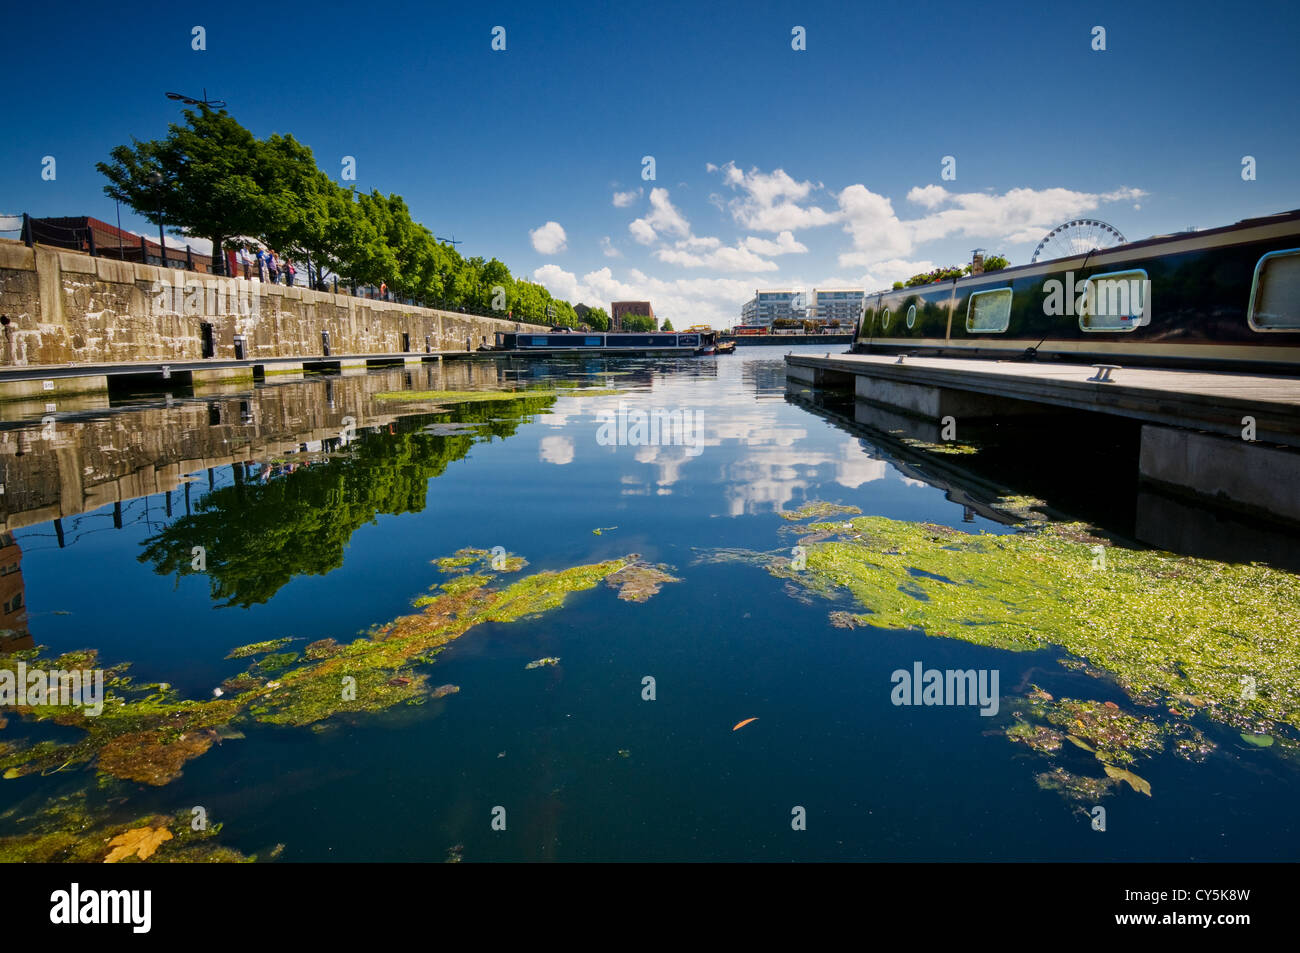 albert dock at liverpool city centre, mooring with reflected blue sky in blue water - Stock Image